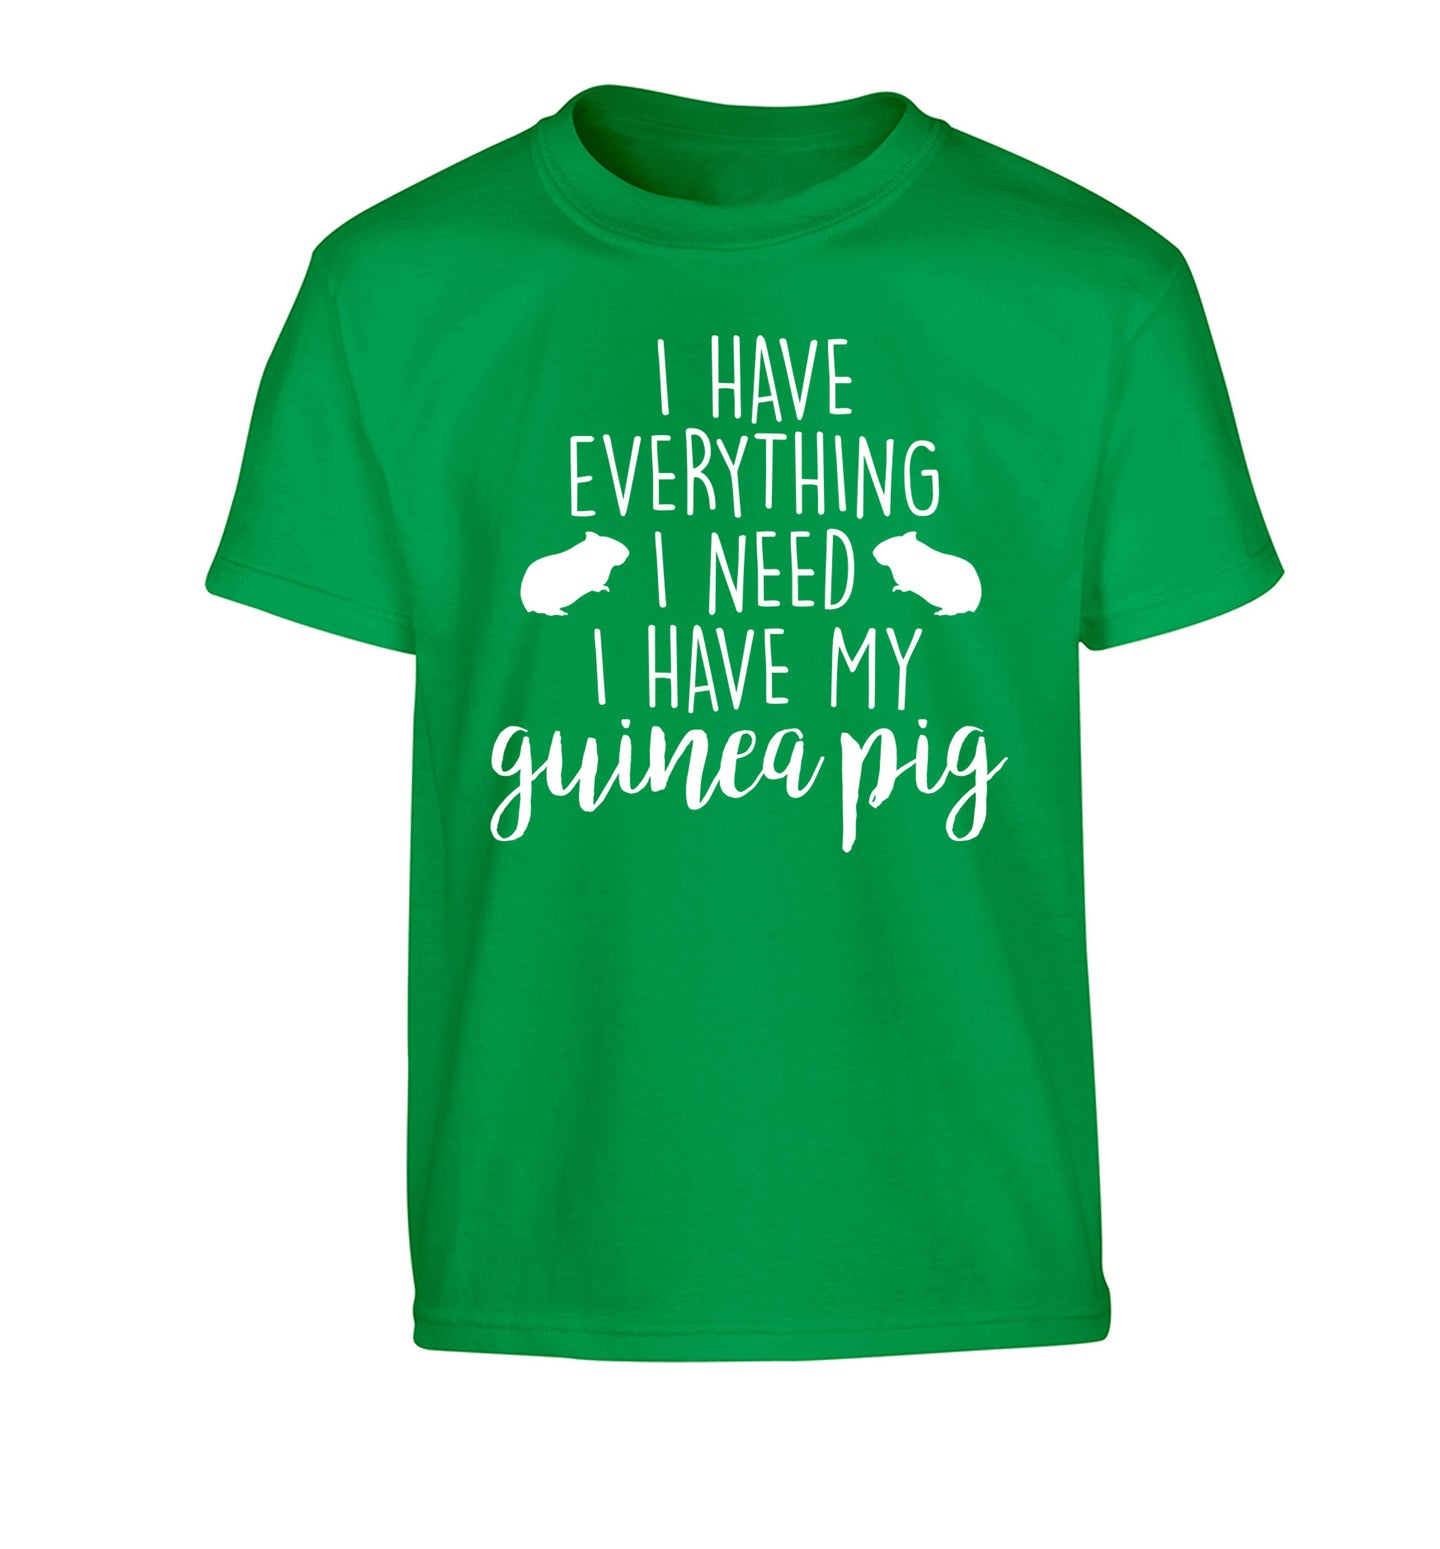 I have everything I need, I have my guinea pig Children's green Tshirt 12-14 Years